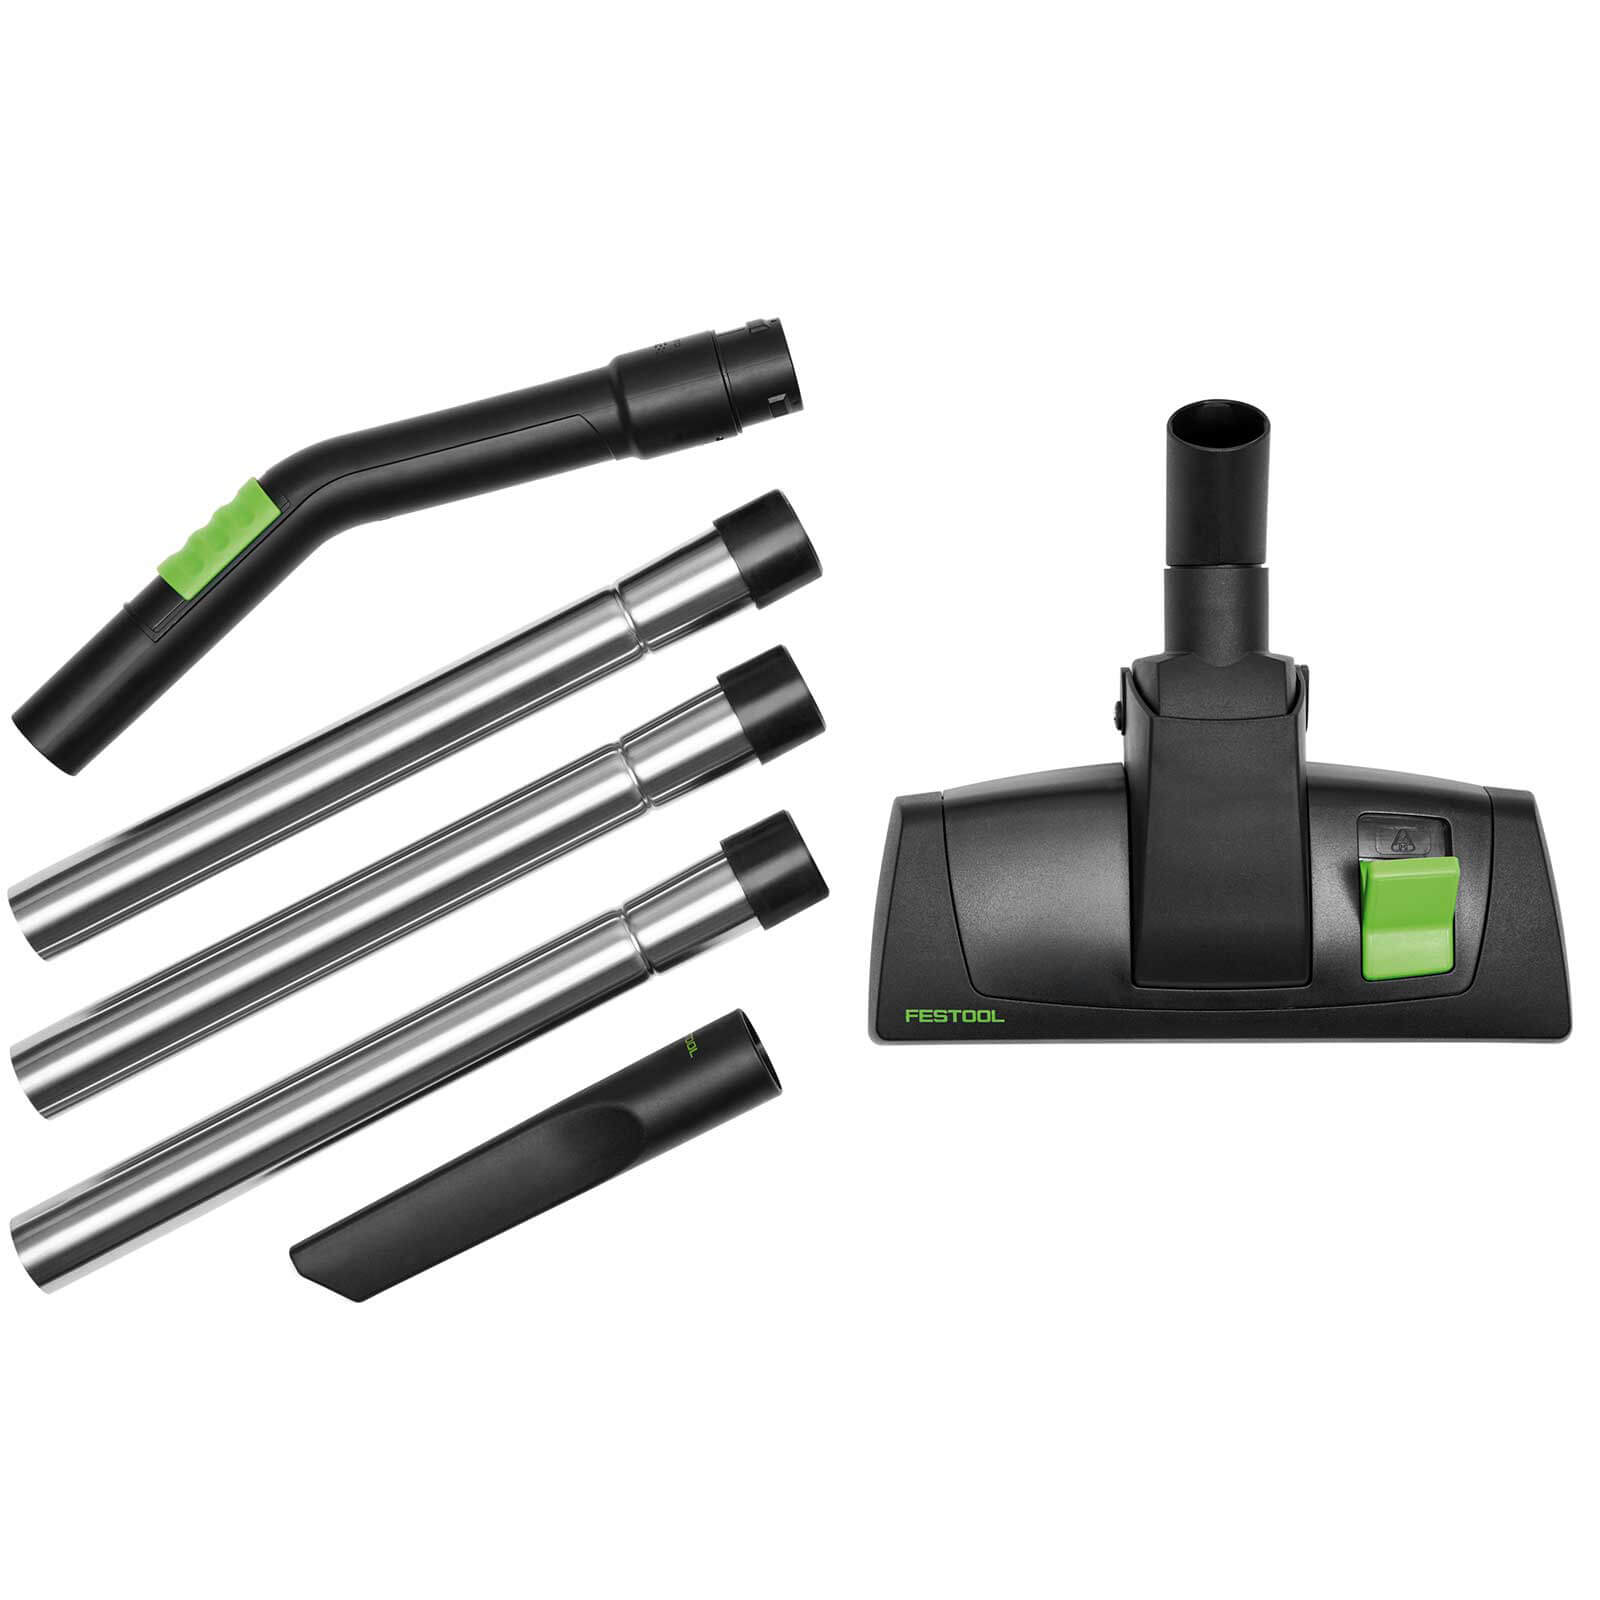 Festool D 27/36 P-Rs Cleaning Set